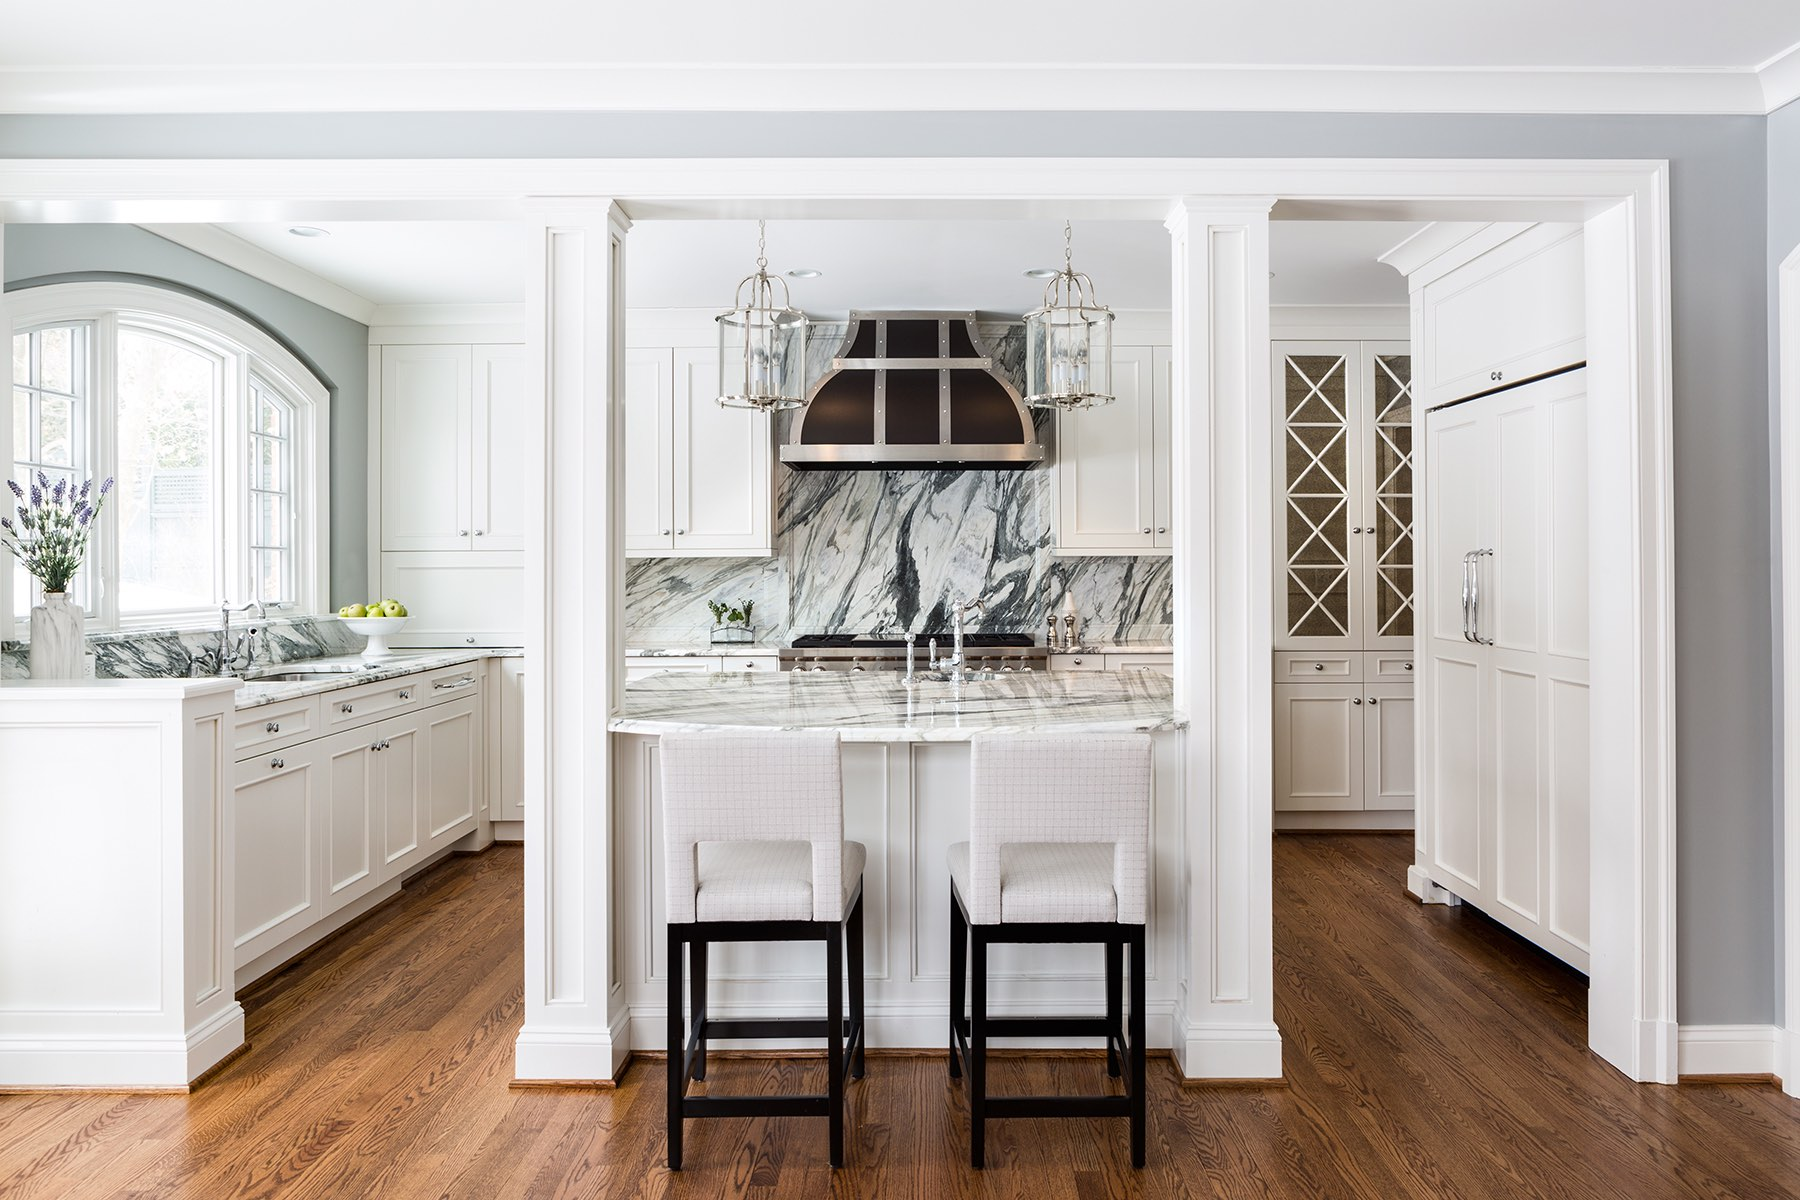 Custom kitchen with white cabinetry, white marble counters and island top, steel pendant lights